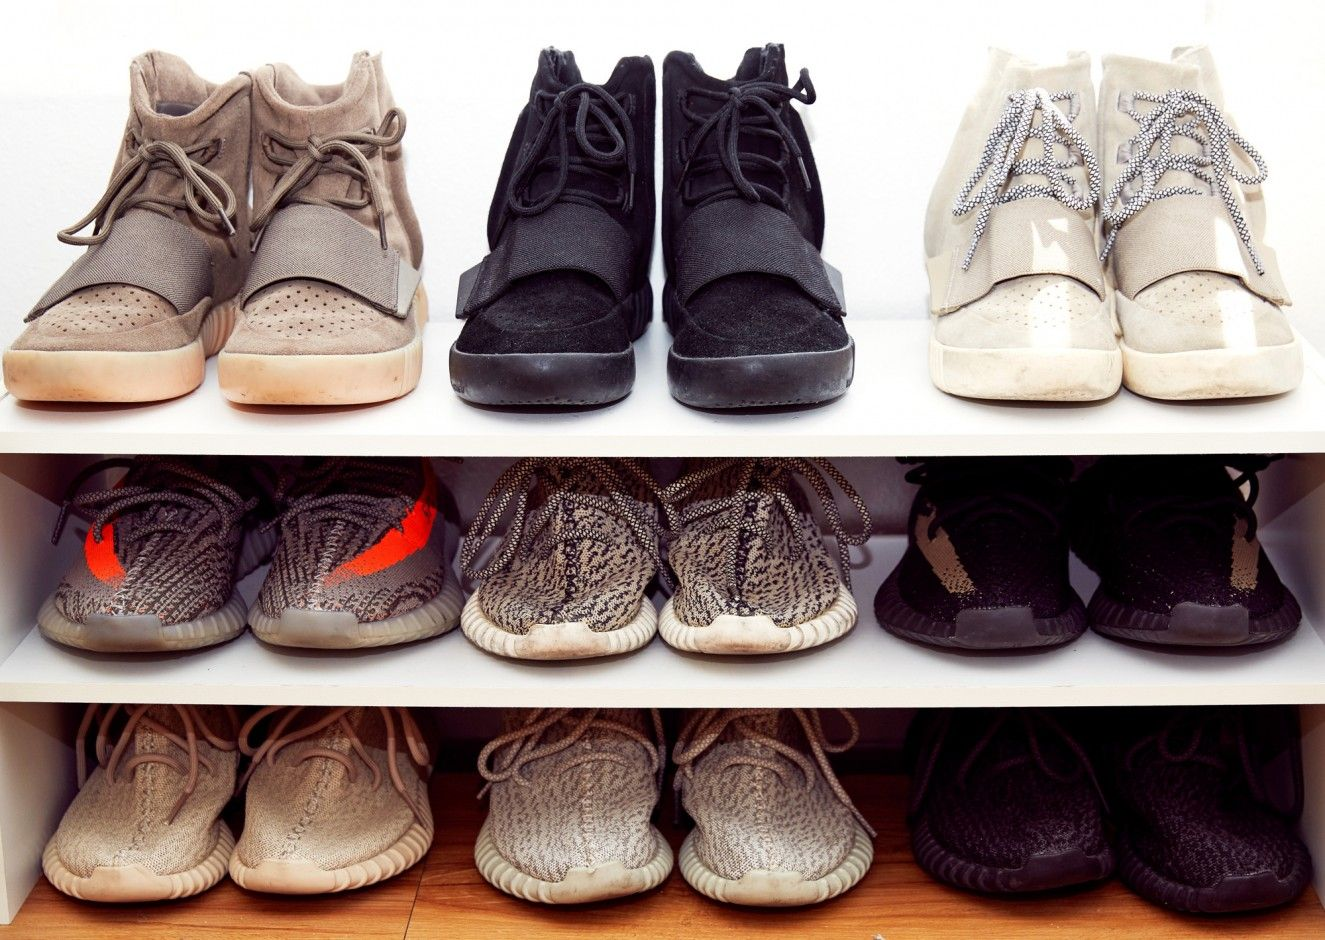 Kanye West Yeezy Sneakers Offered for Kidney   Time